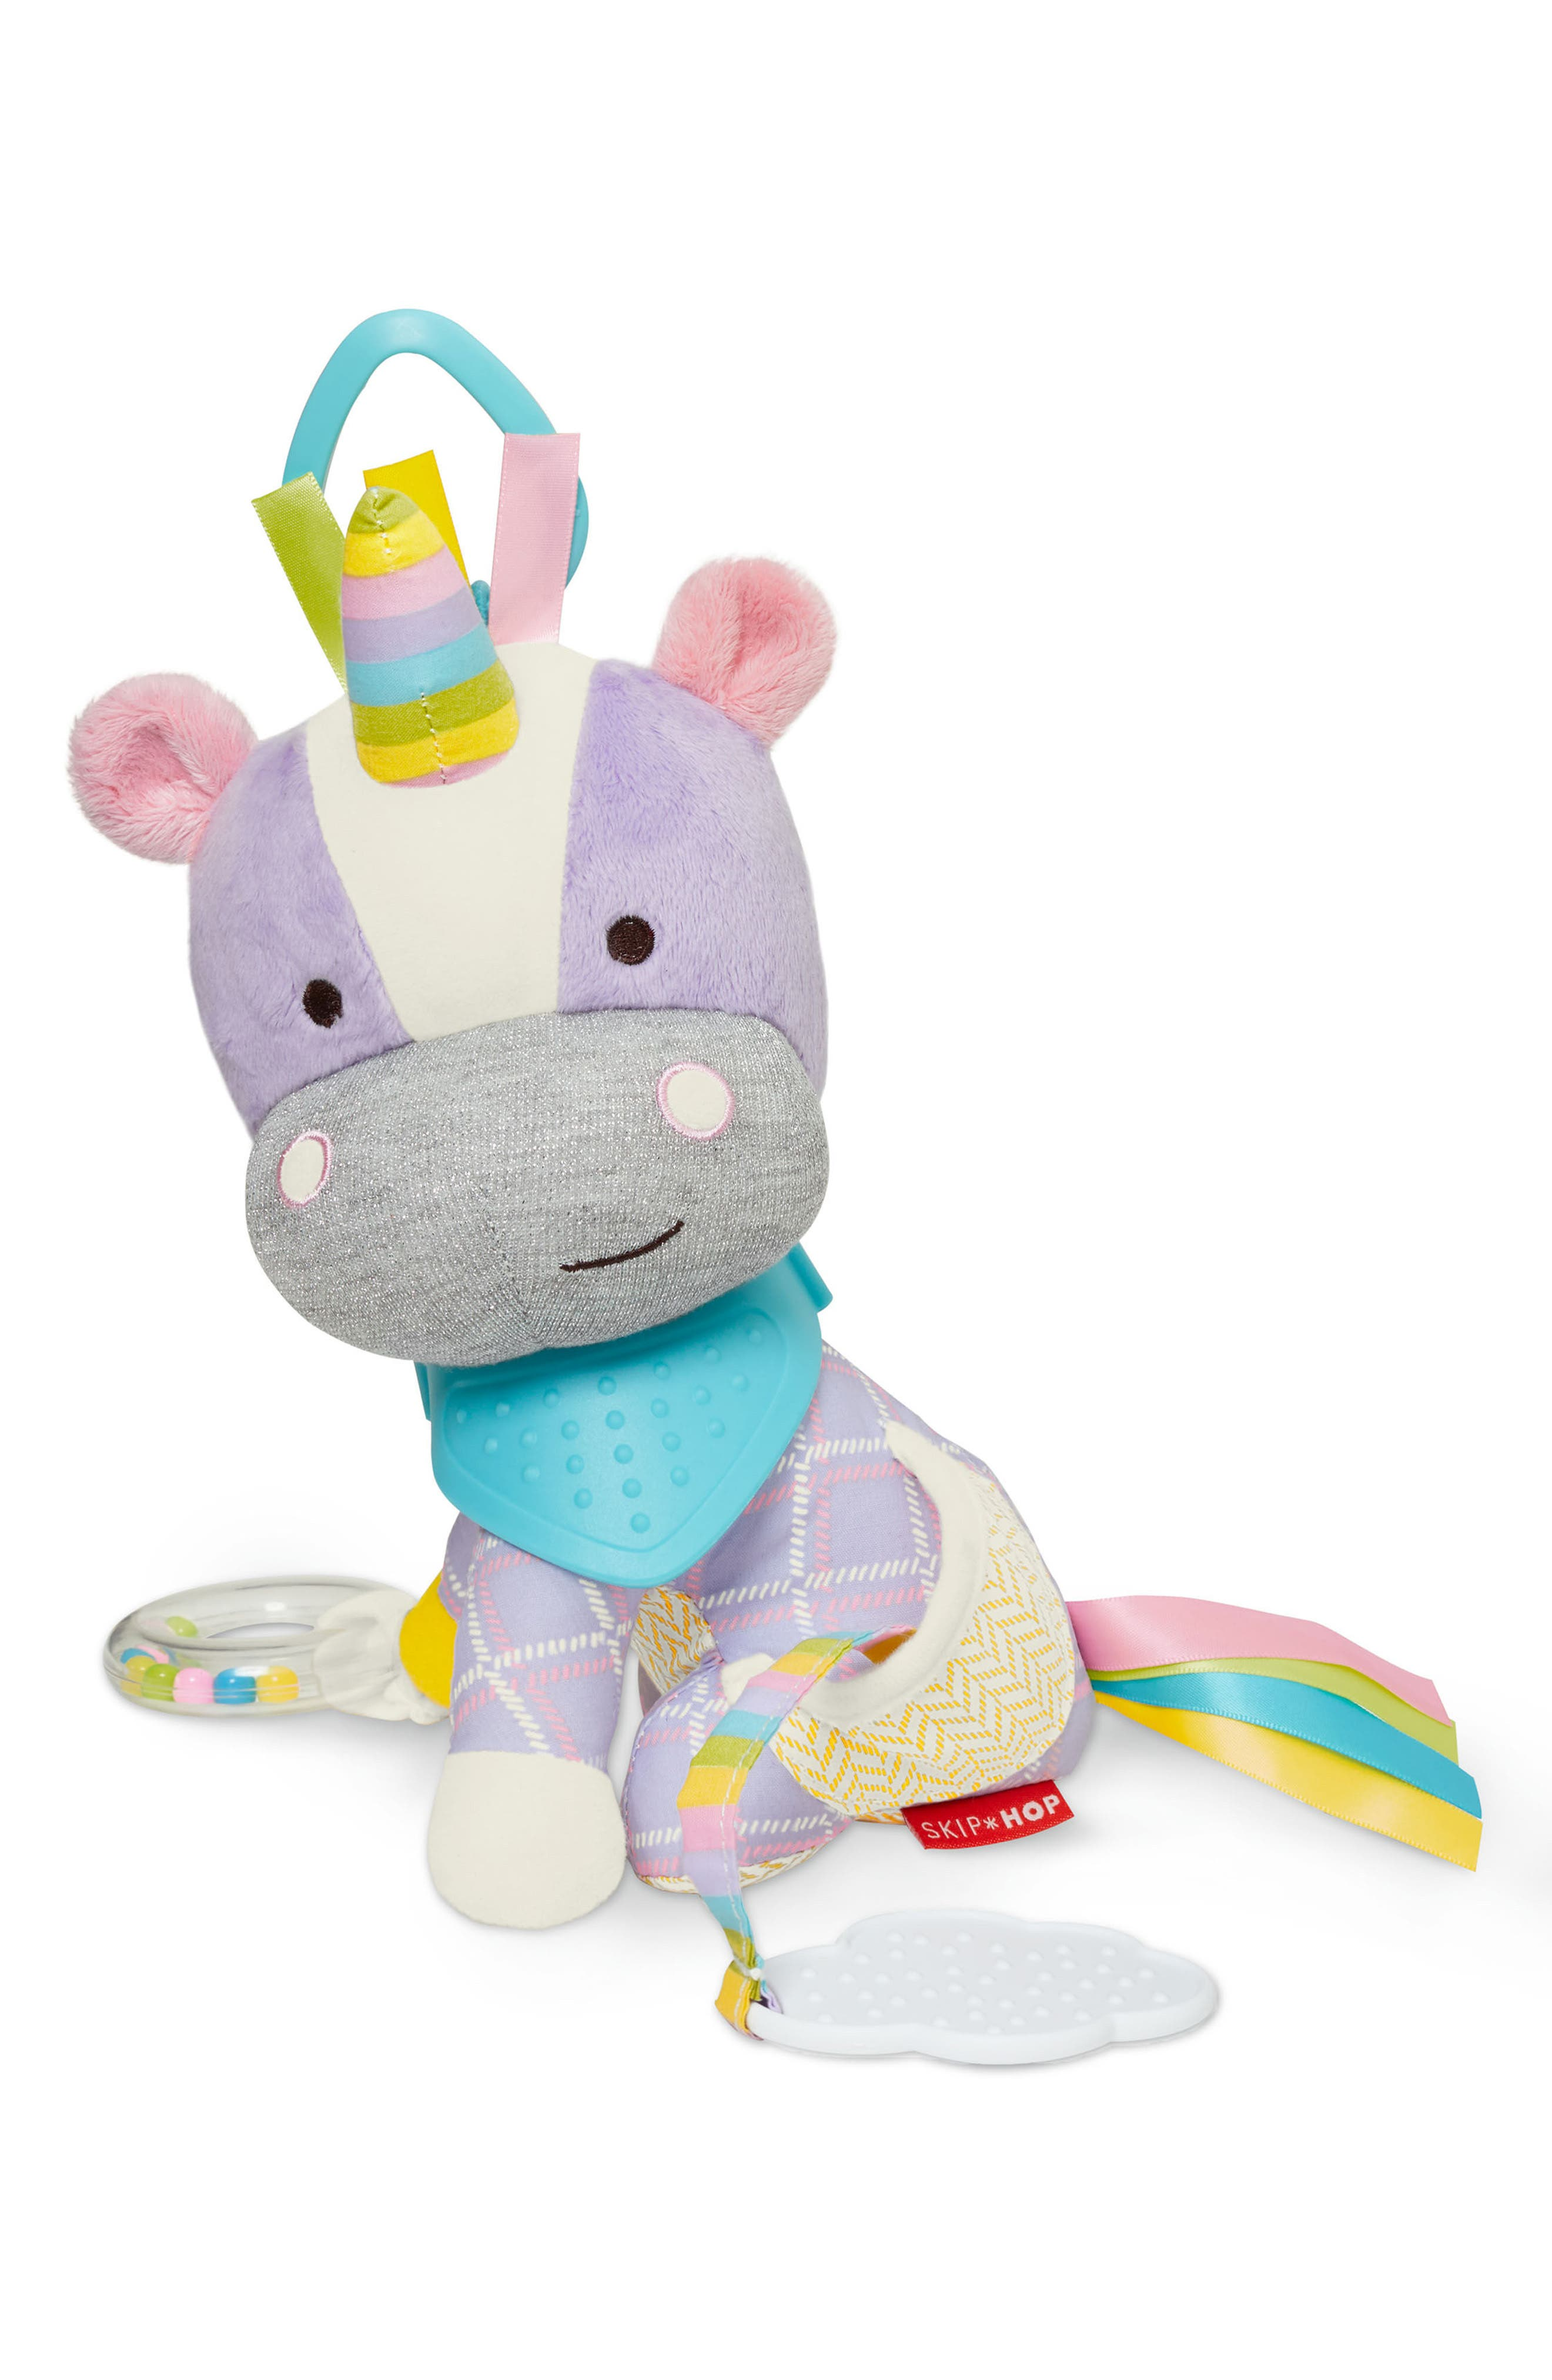 Bandana Buddies Activity Unicorn,                             Main thumbnail 1, color,                             500